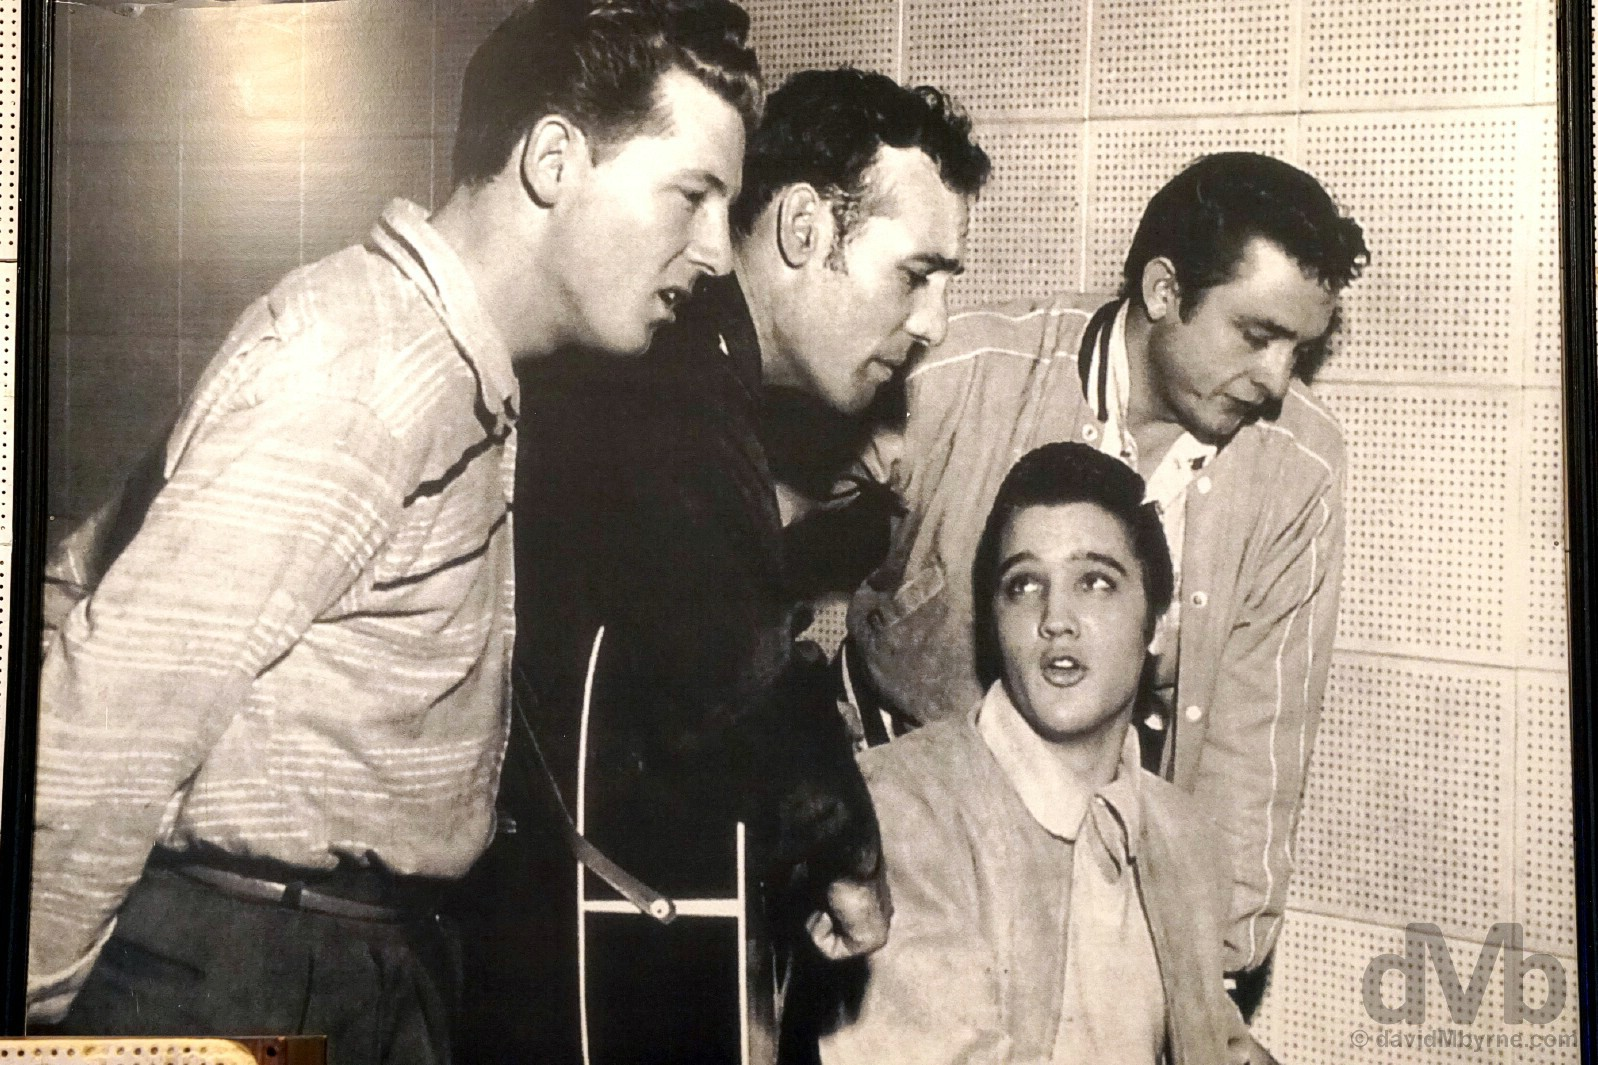 The Million Dollar Quartet in the recording studio of Sun Studios, Memphis, Tennessee, USA. September 19, 2016.